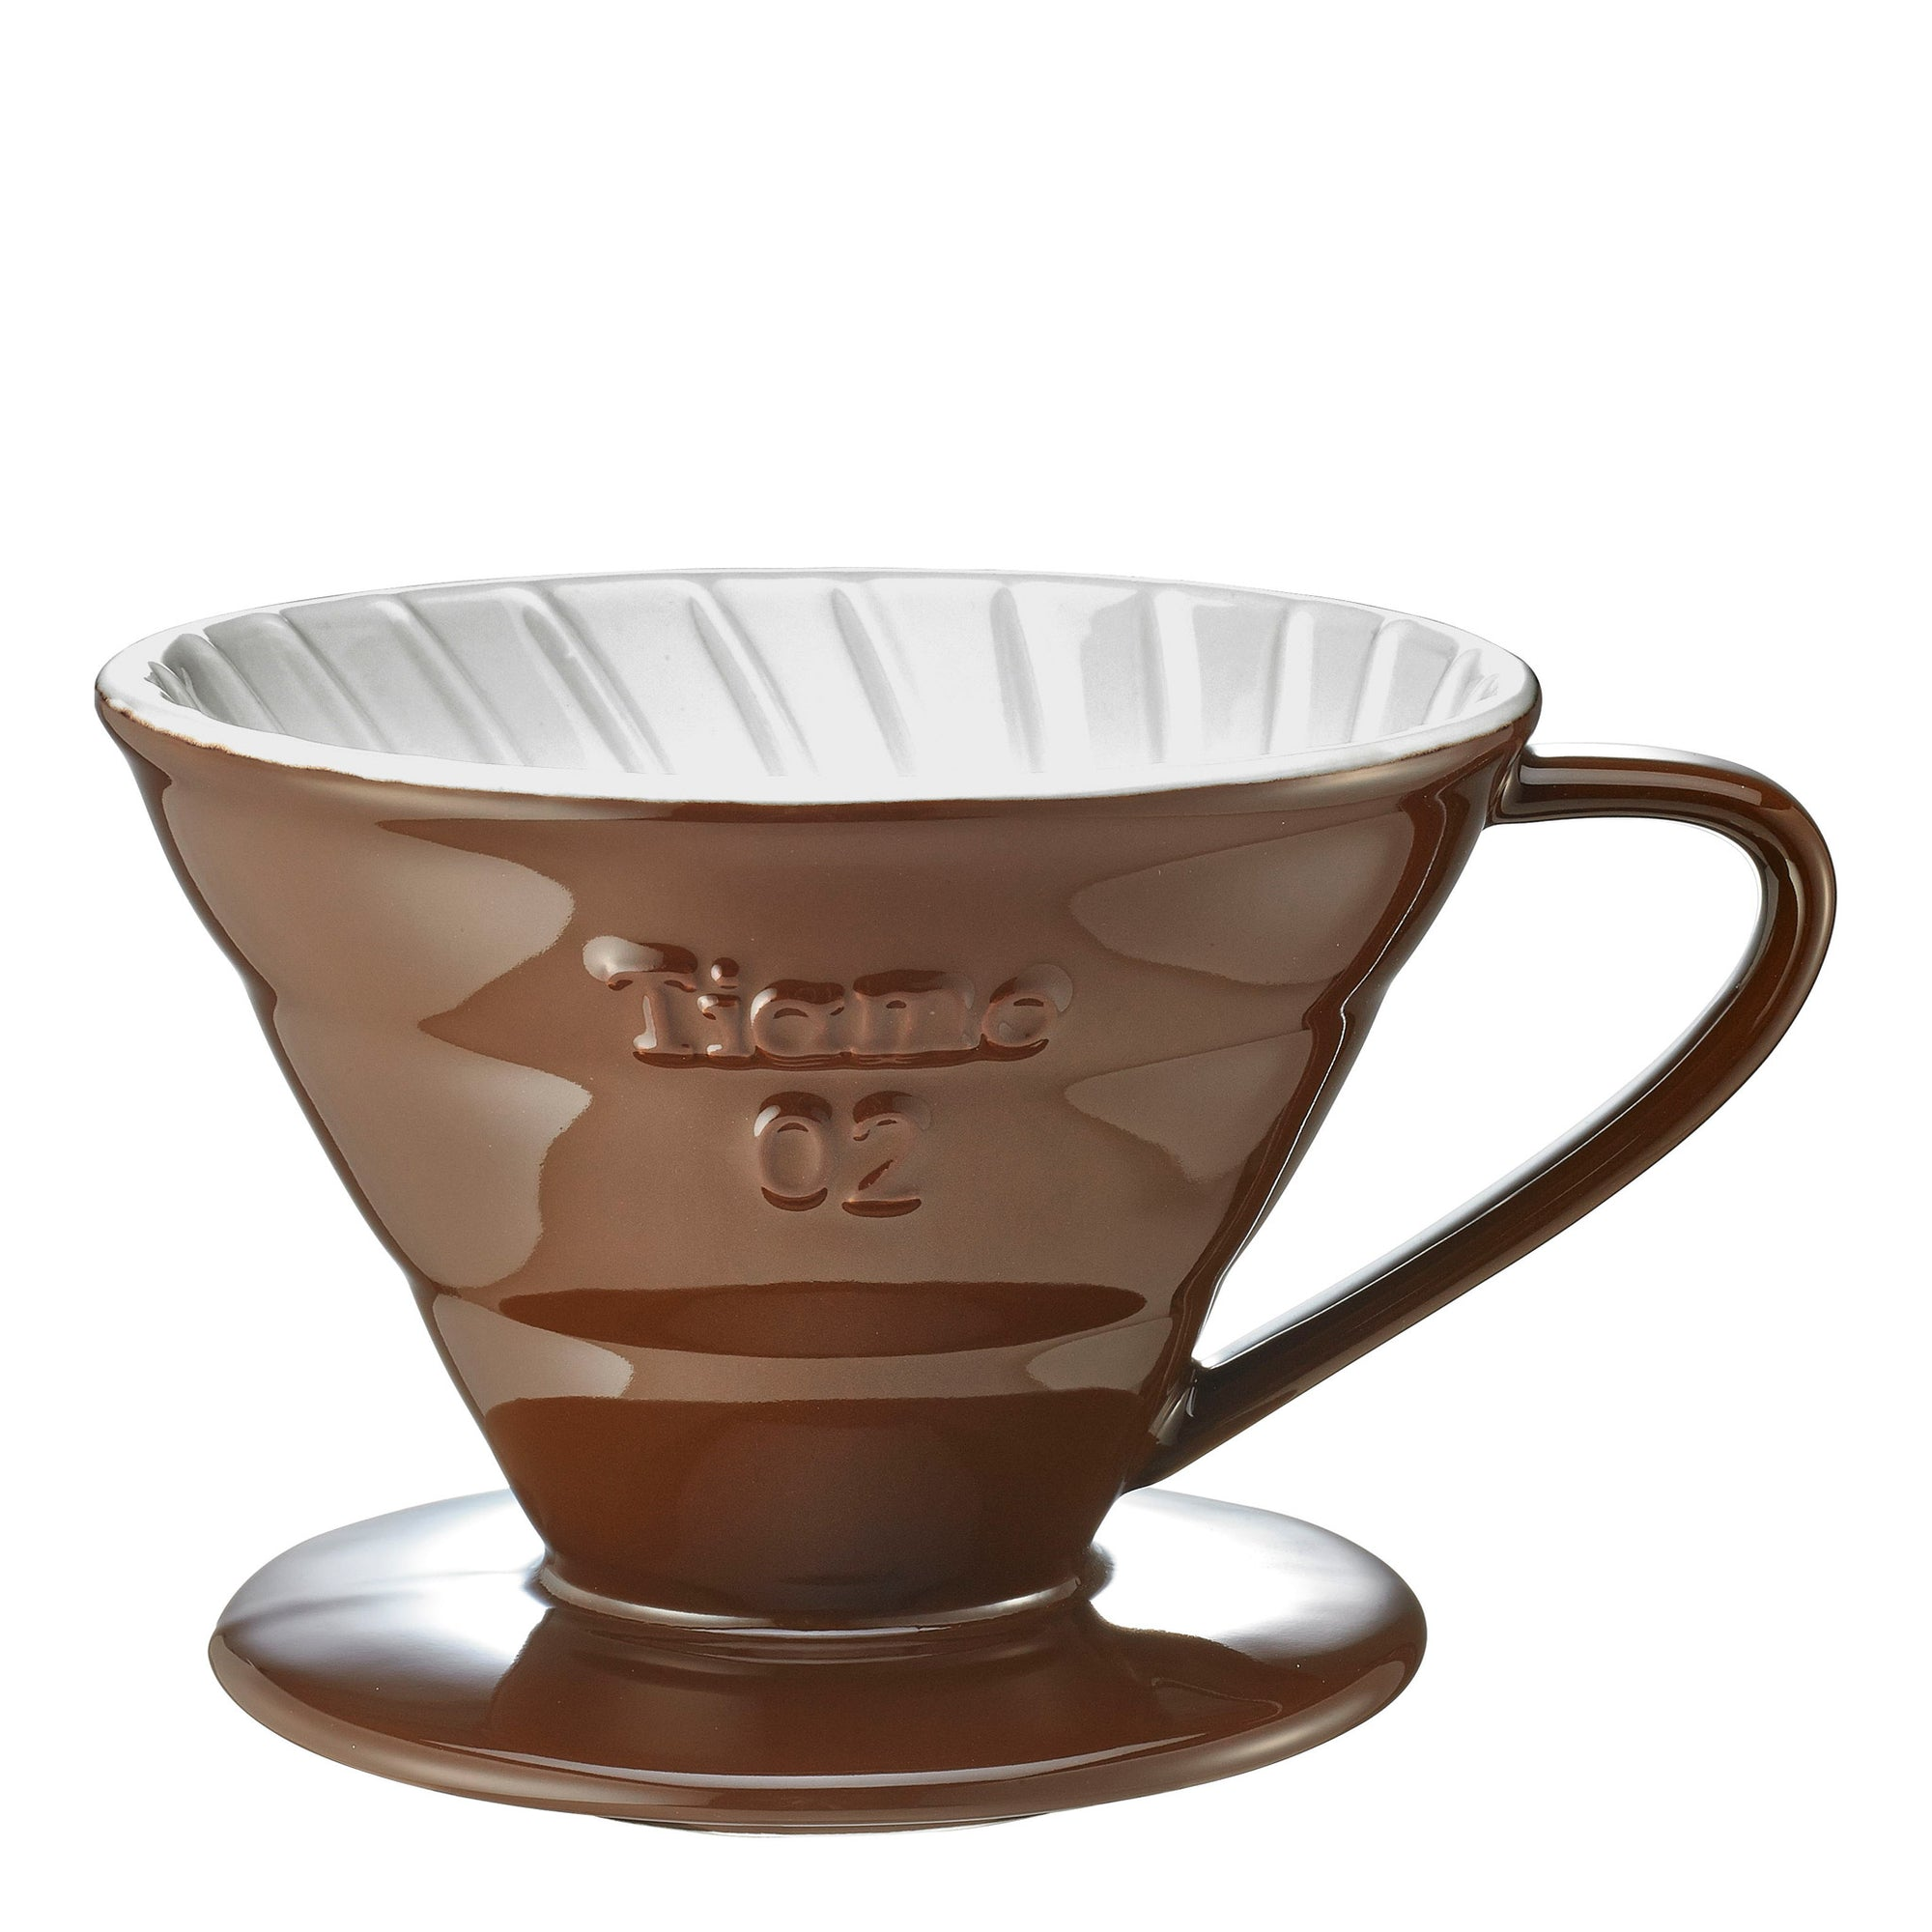 Filter V60 Ceramic - brown - Tiamo - Espresso Gear